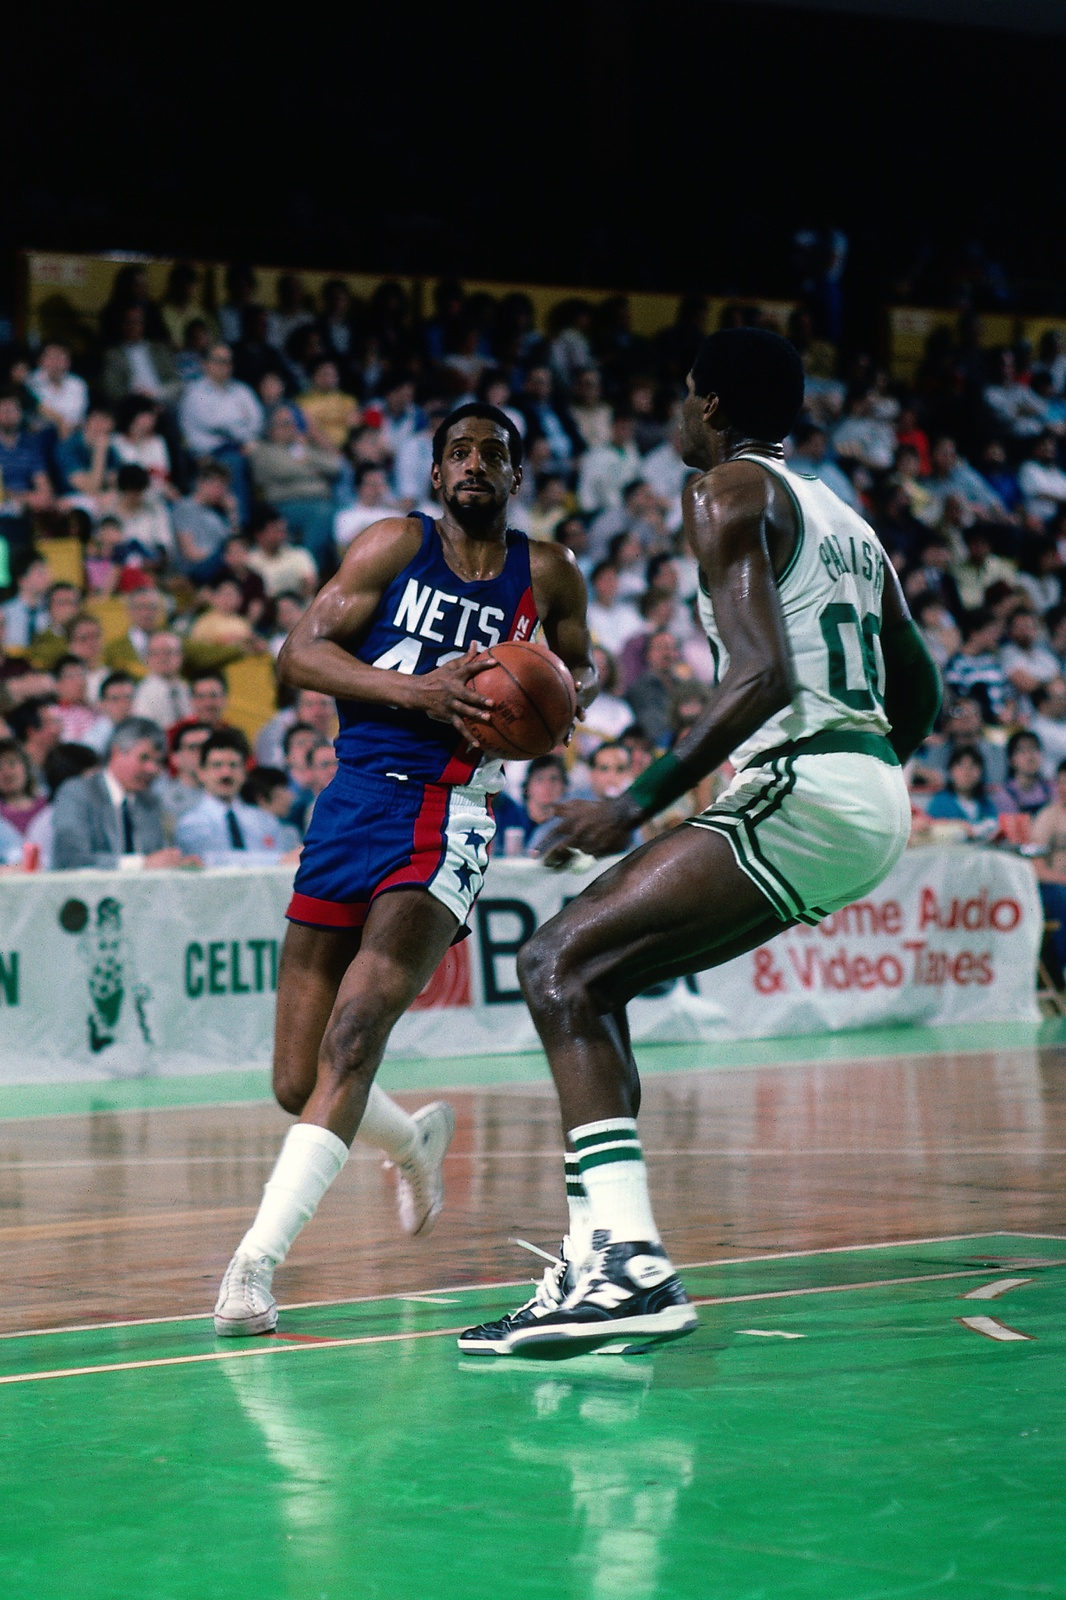 Mickey Johnson #43 of the New Jersey Nets drives against Robert Parish #00 of the Boston Celtics during a game circa 1986 at the Boston Garden in Boston, Massachusetts.